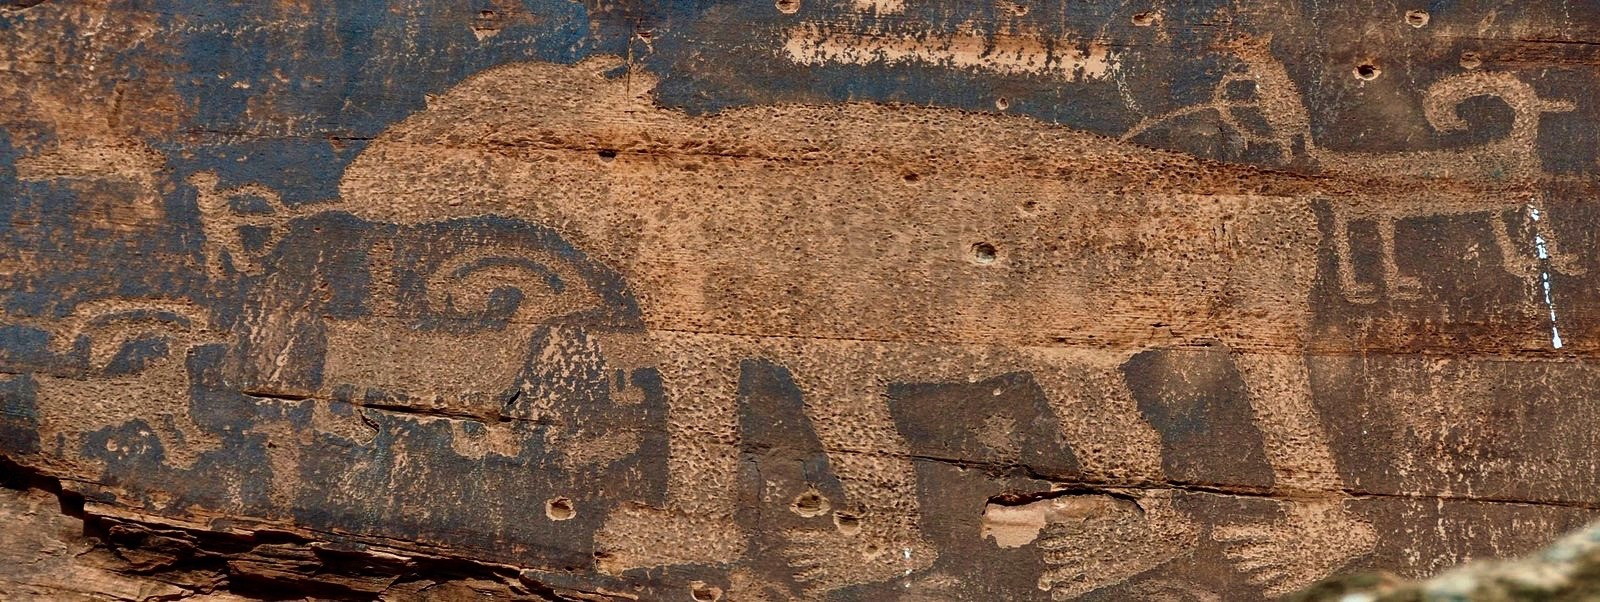 Petroglyphs, circa 8,000 Before Present to 700 BP, along the Colorado River near Moab in eastern Utah. Image courtesy of  Wikipedia Commons